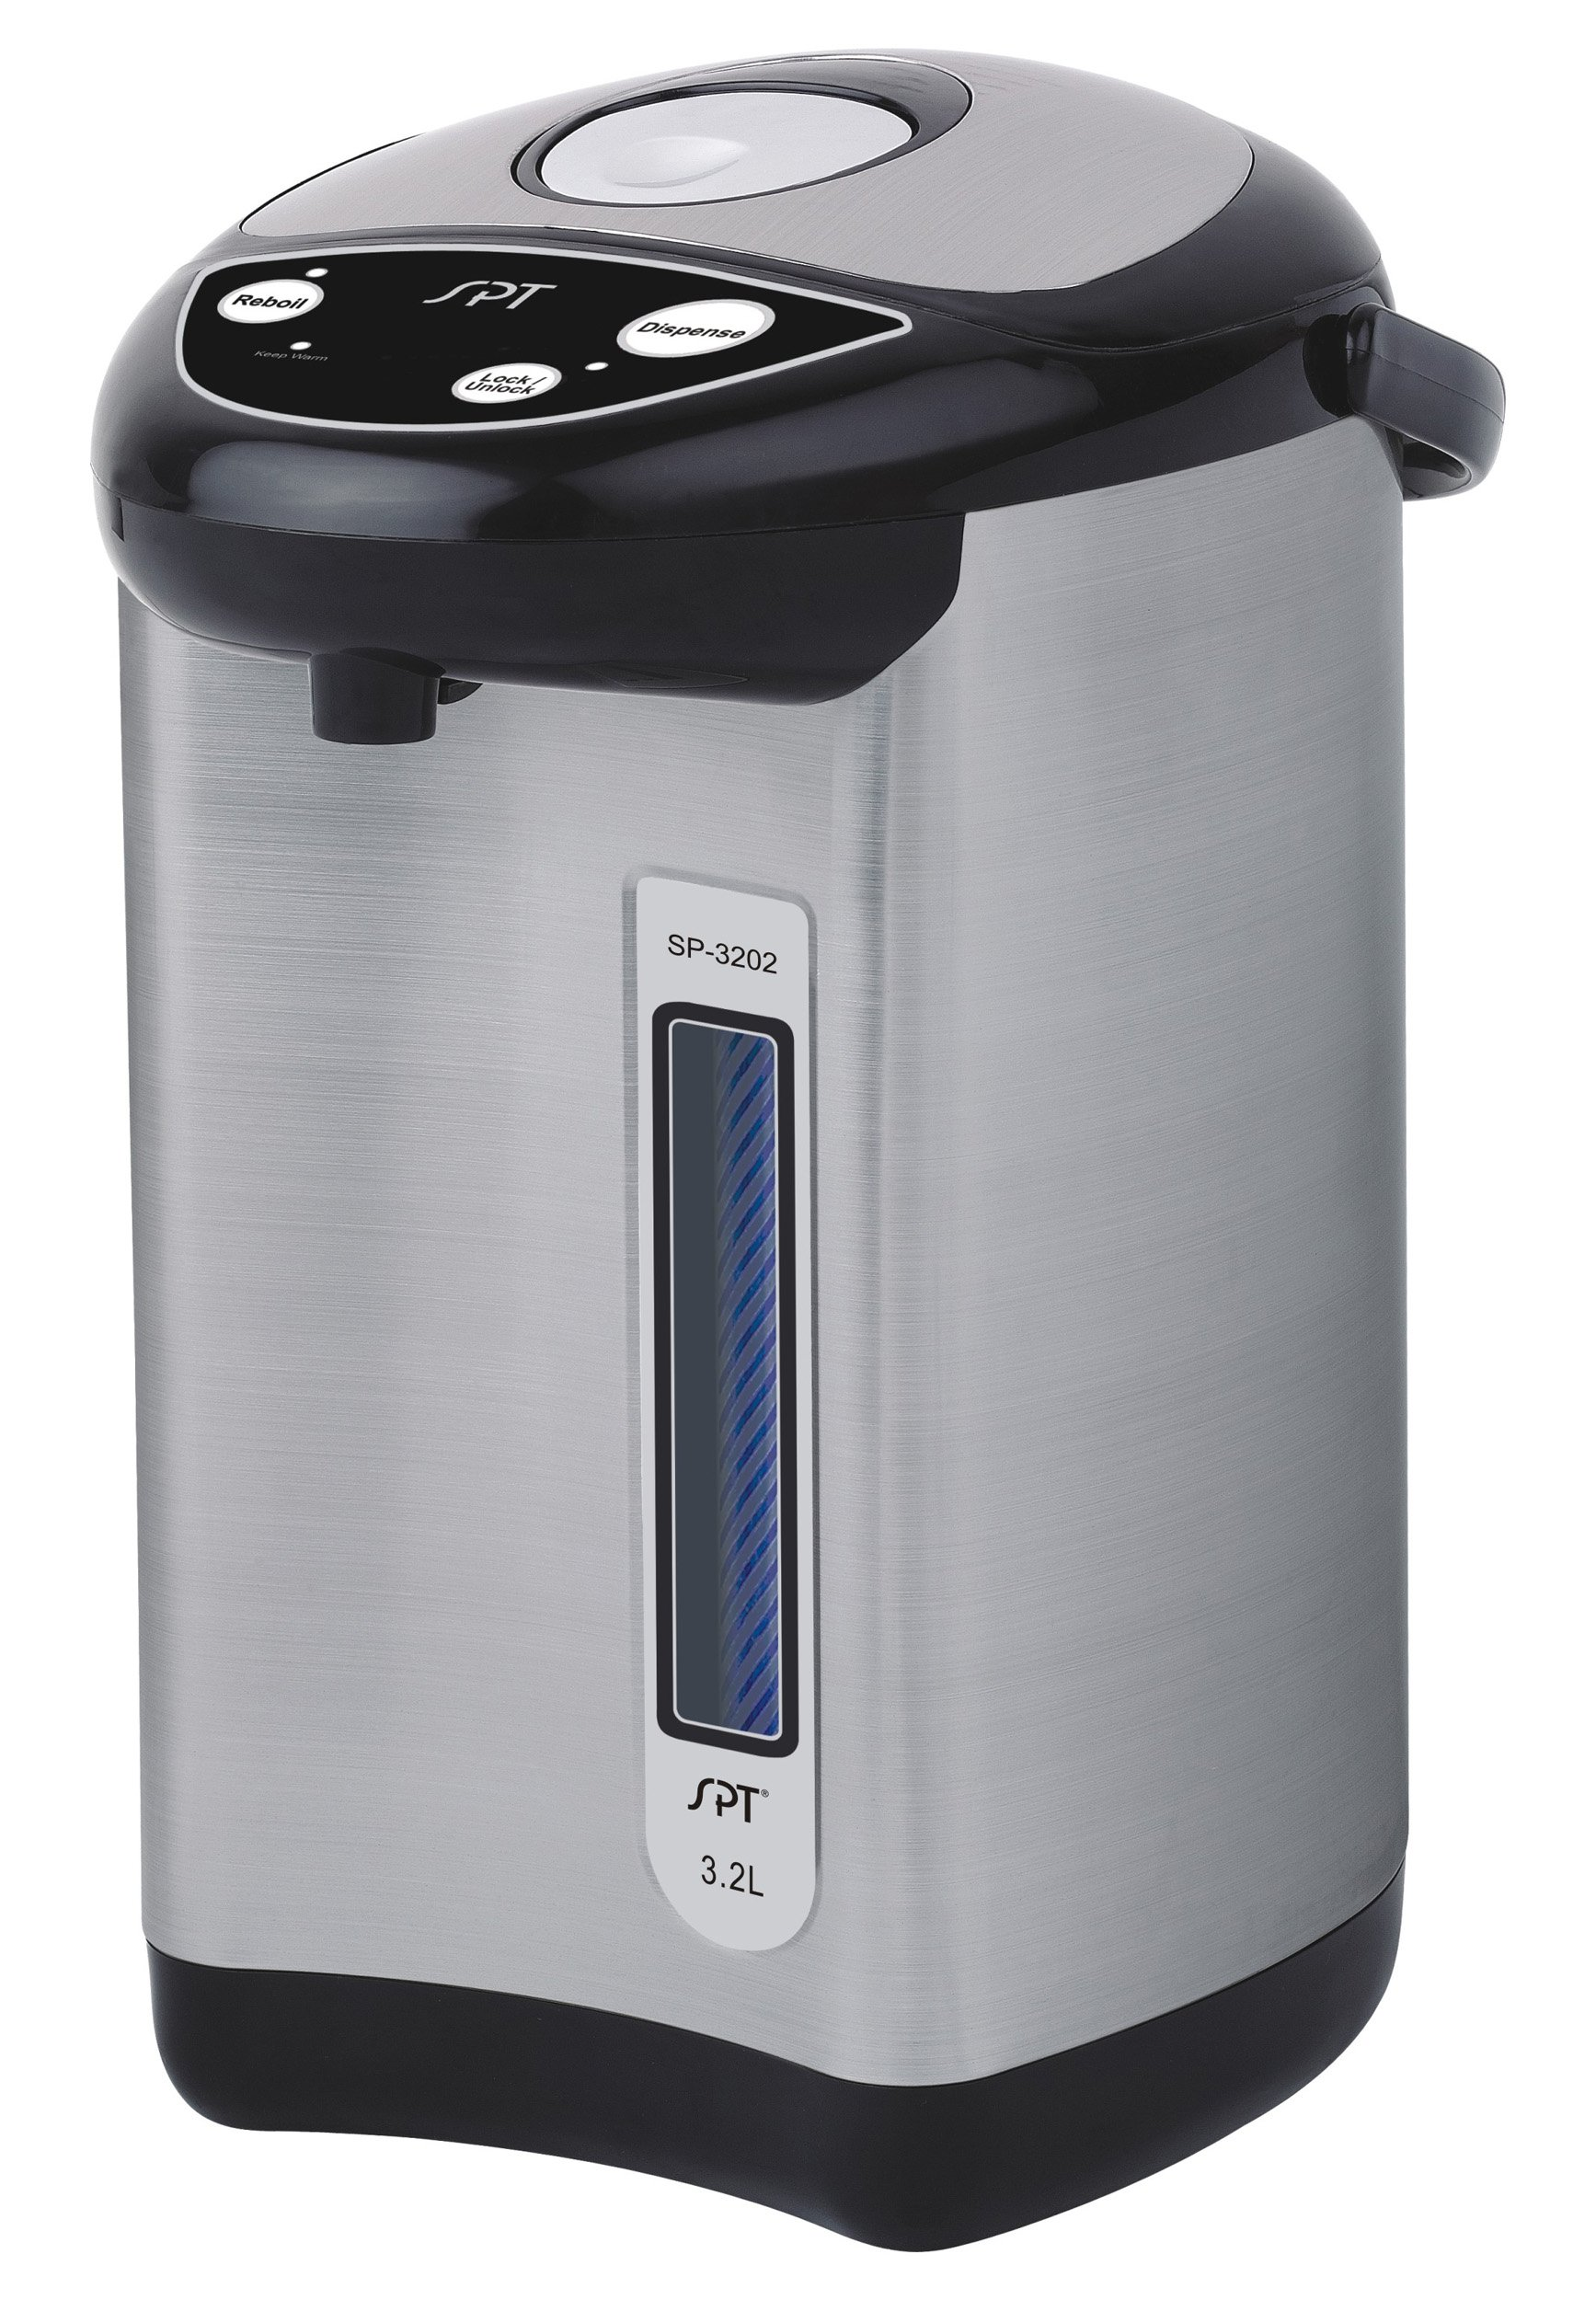 Spt 3.2-Liter Stainless Hot Water Dispenser